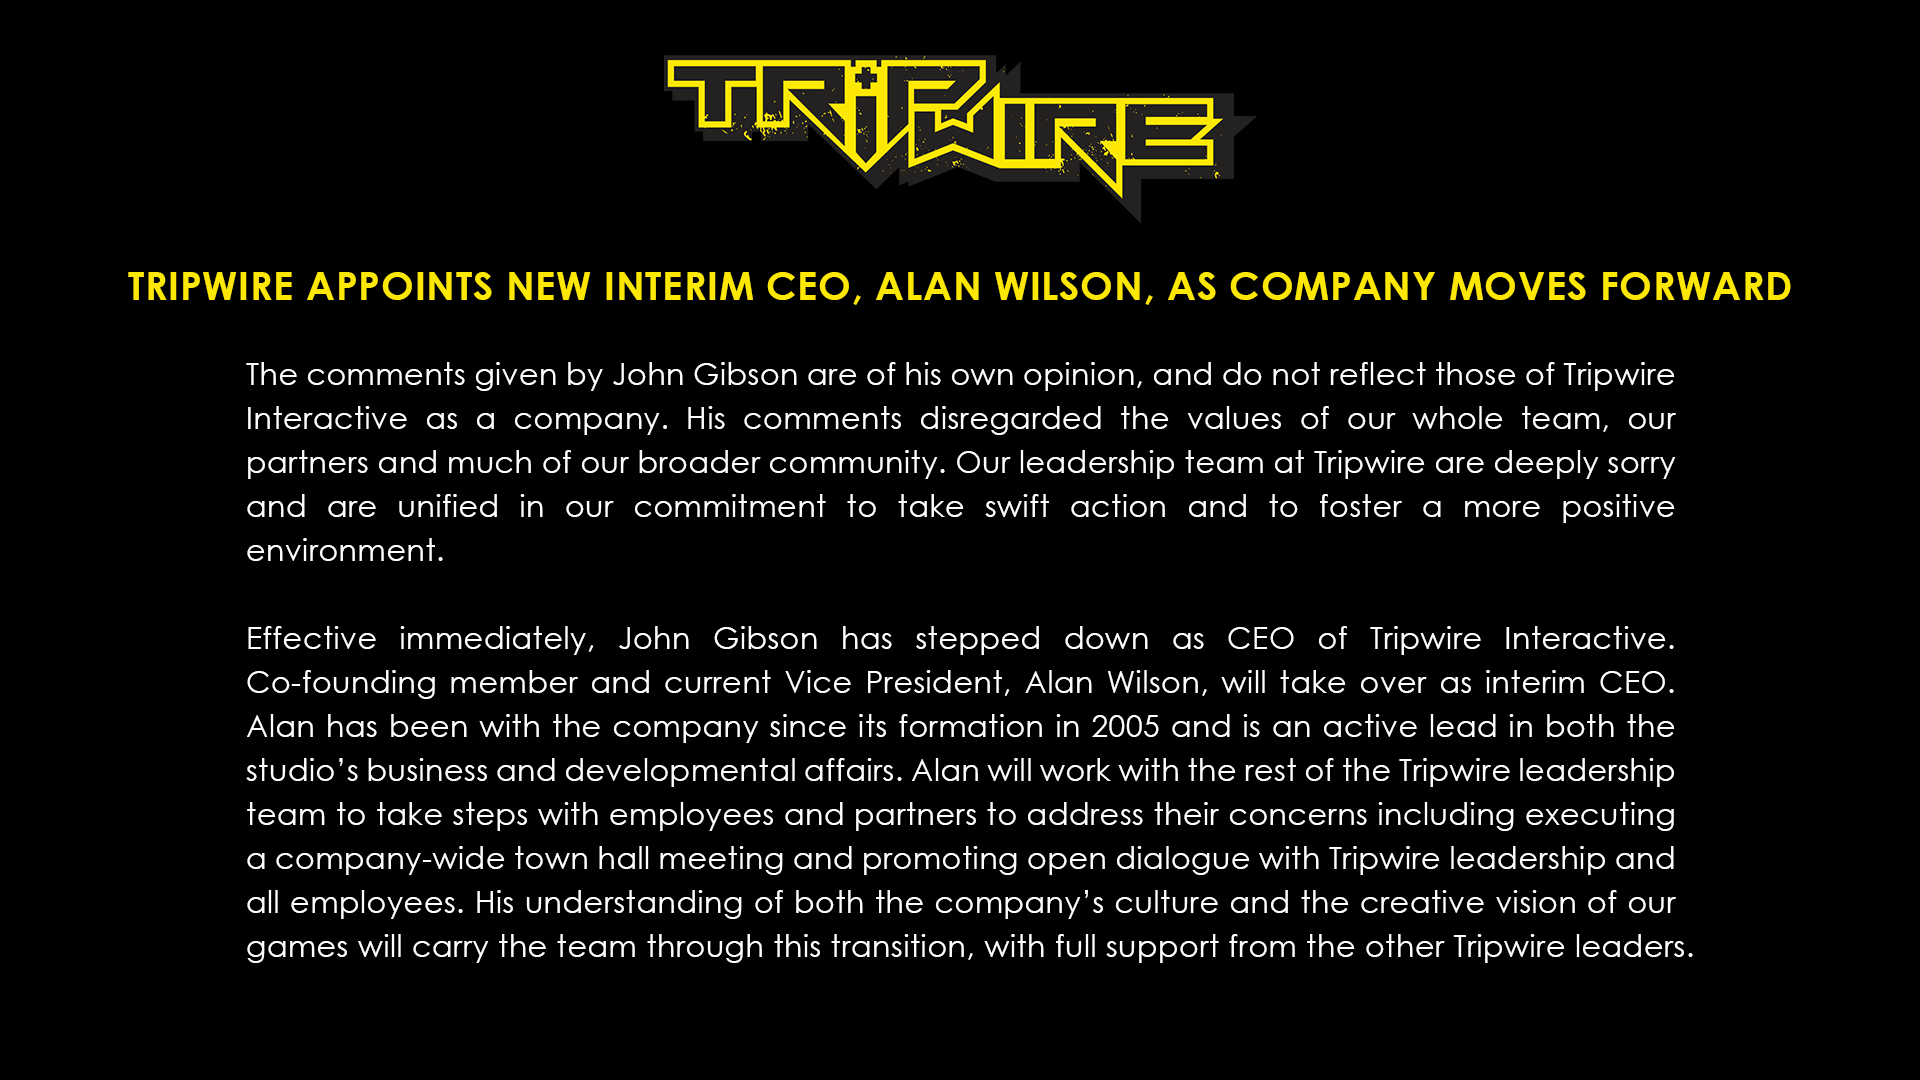 Tripwire Interactive issued a statement on September 6 announcing that CEO John Gibson had been replaced after his endorsement of a recent controversial anti-abortion law in Texas.